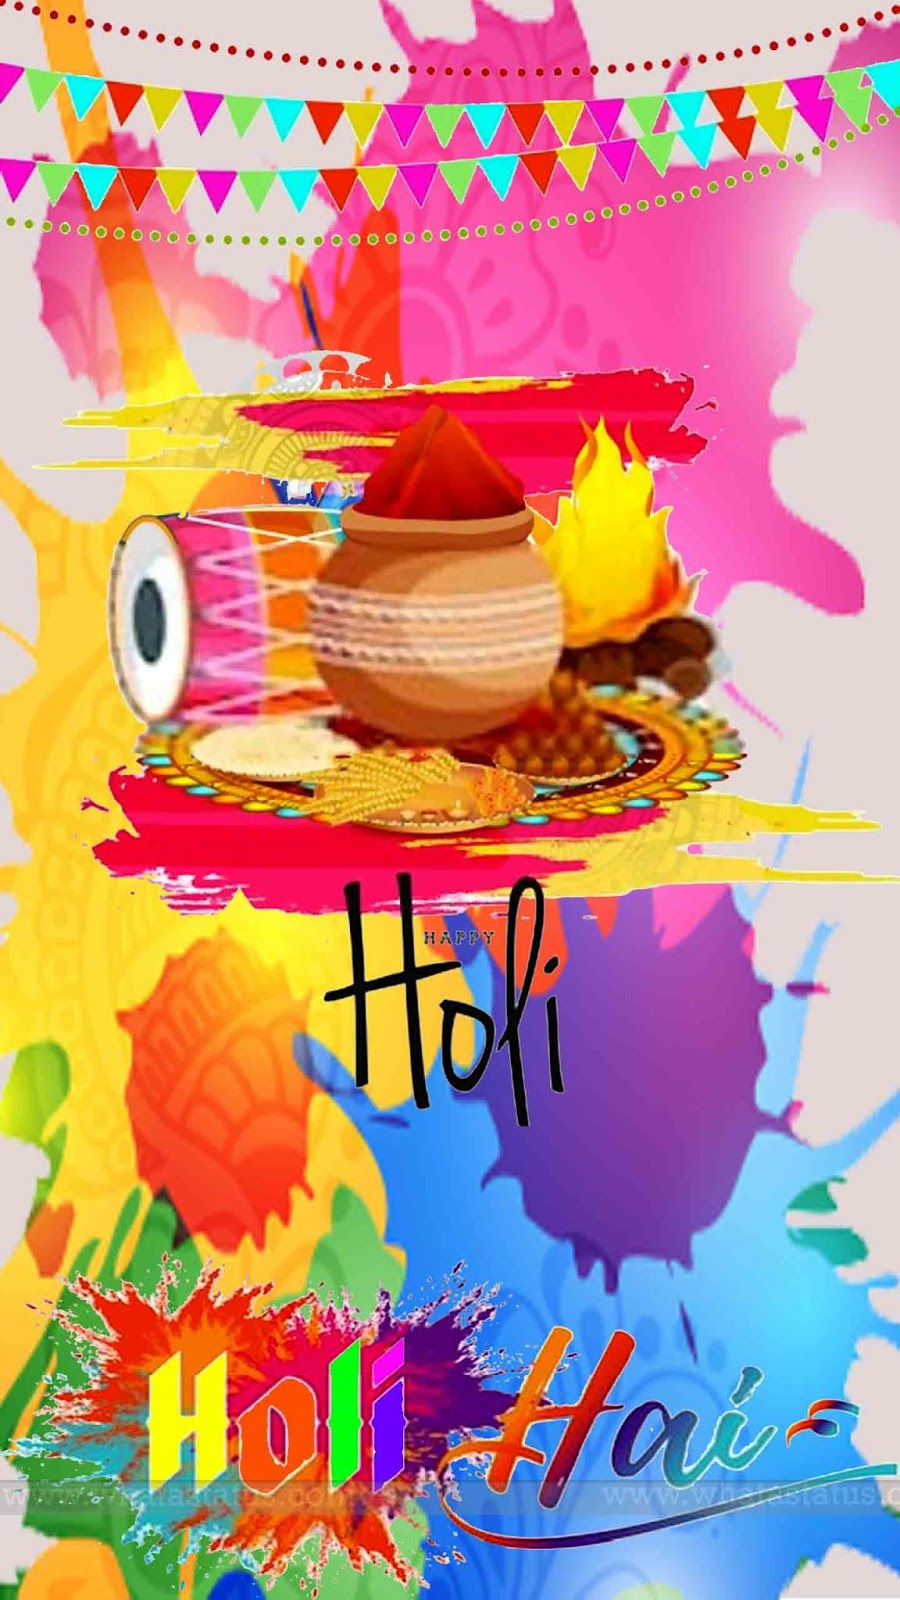 holi-hai-full-hd-picture-2020